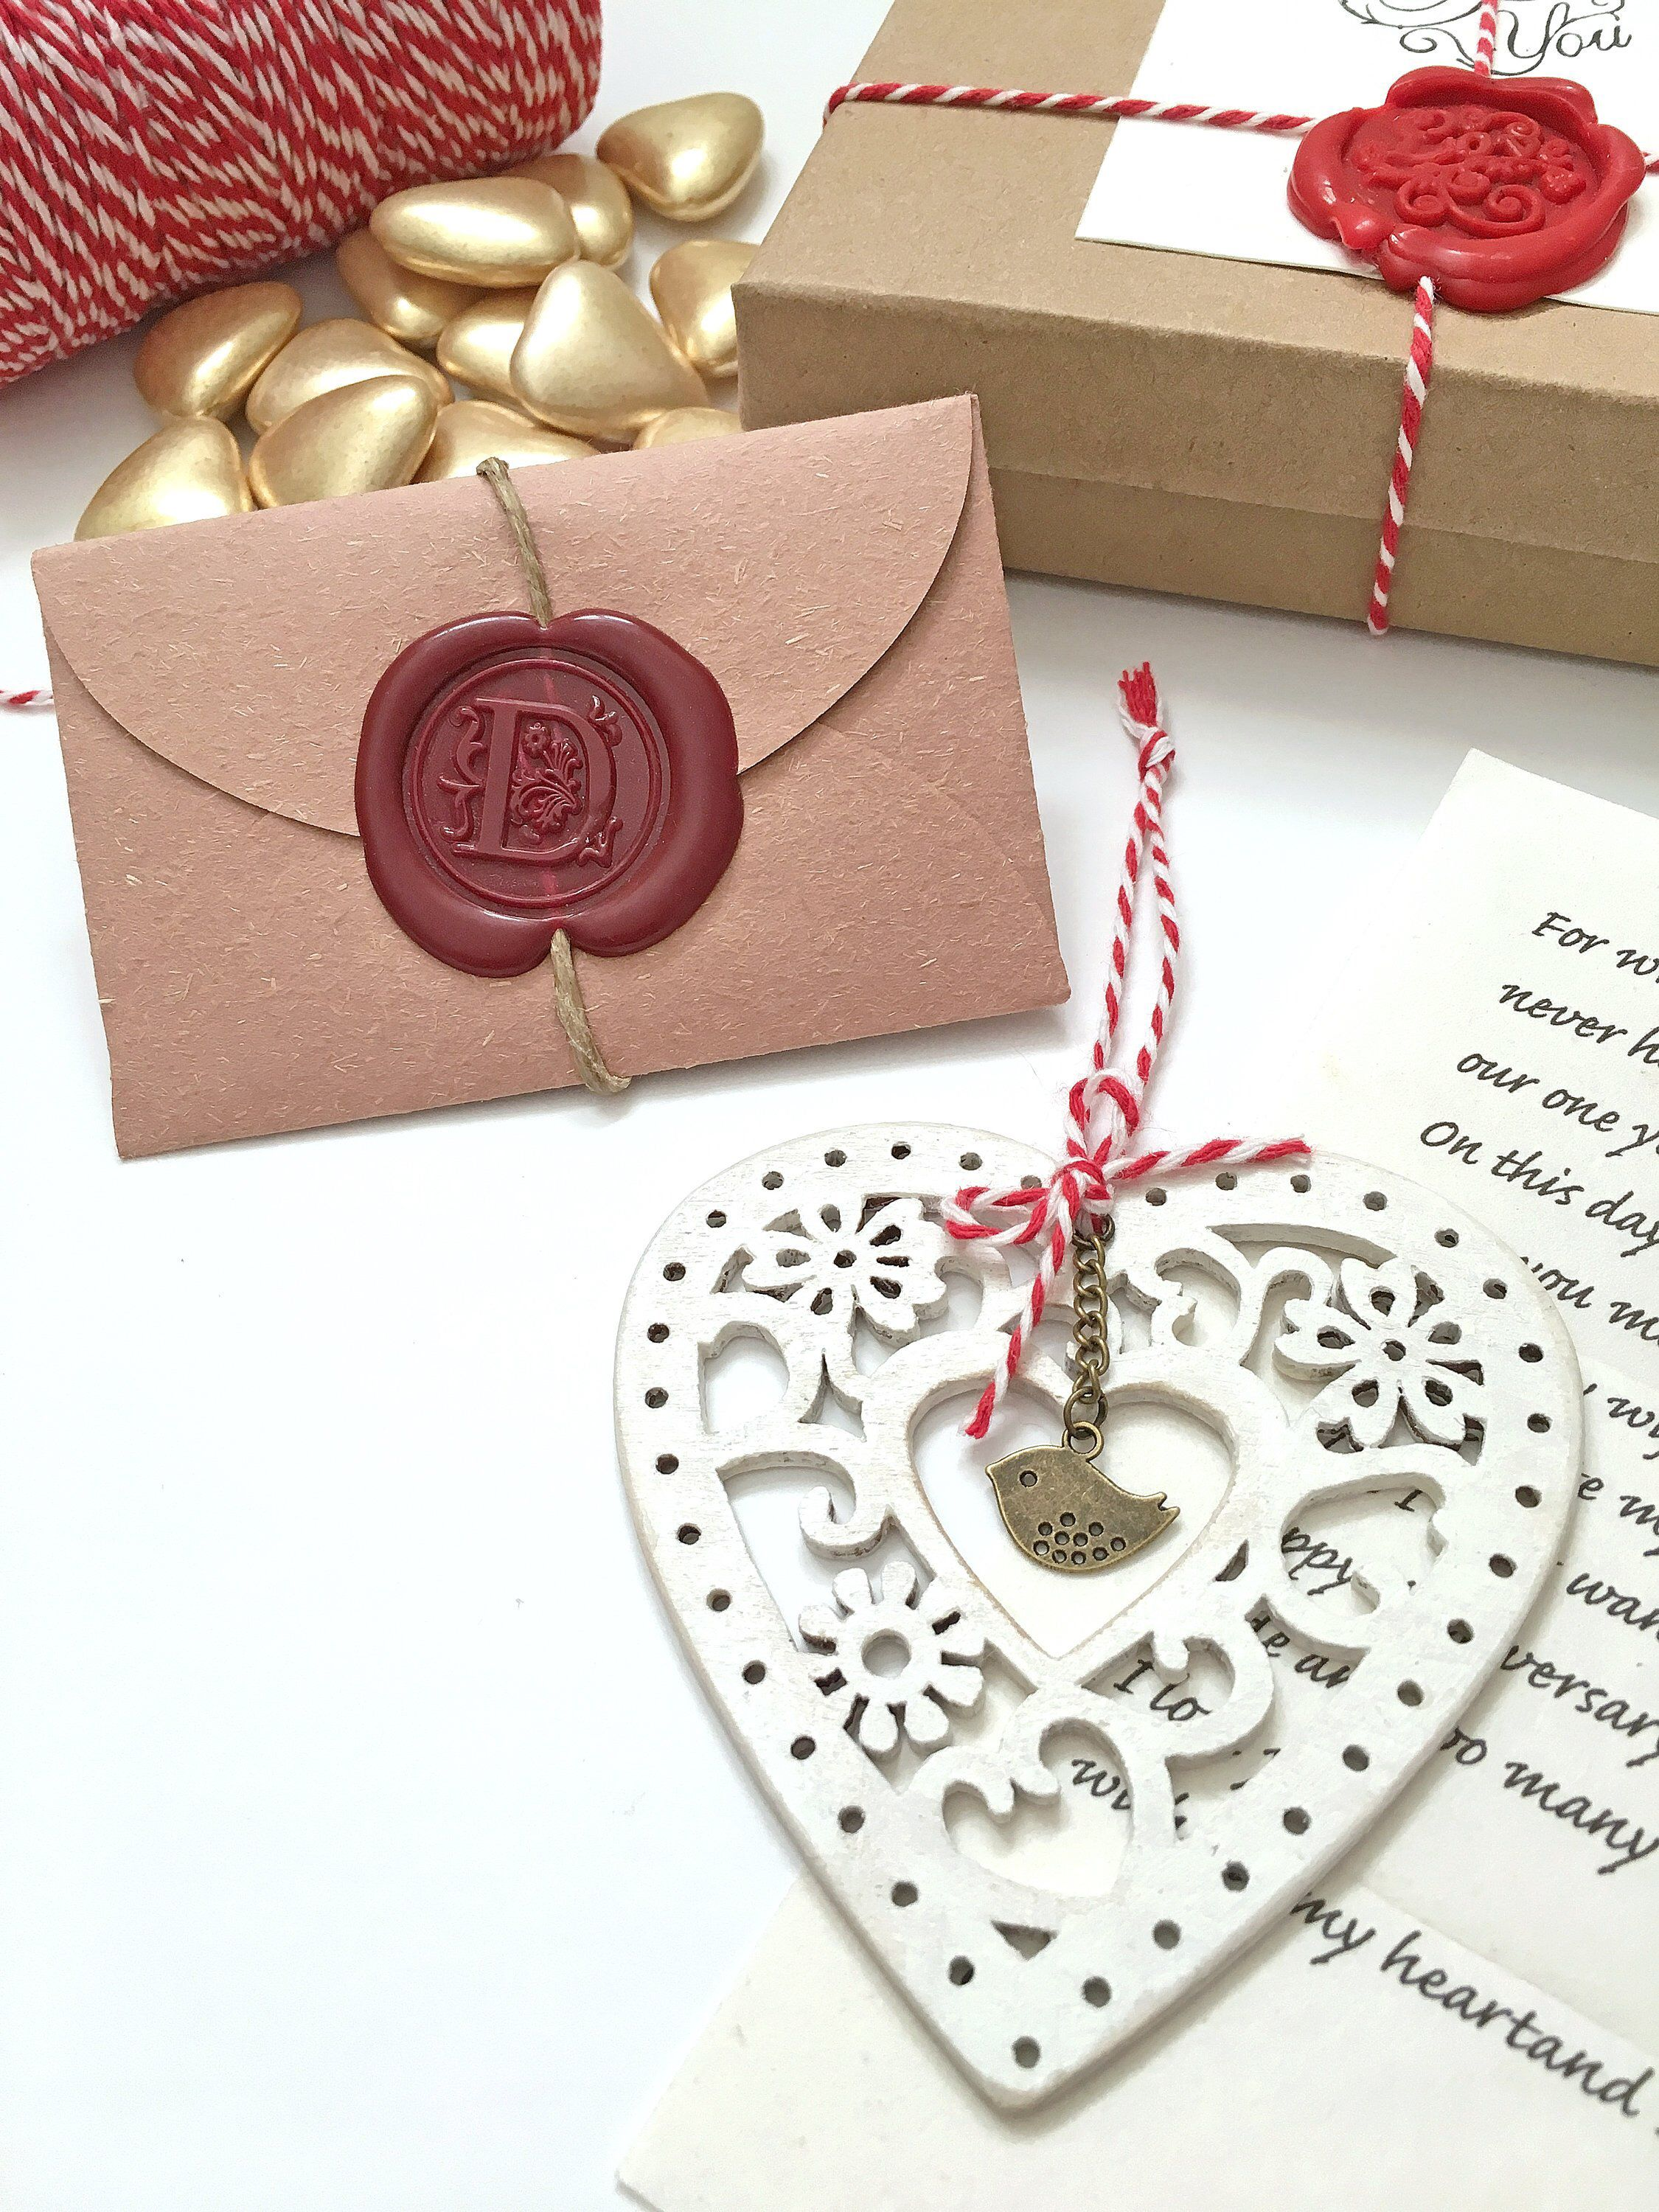 sentimental valentine's day gifts for girlfriend